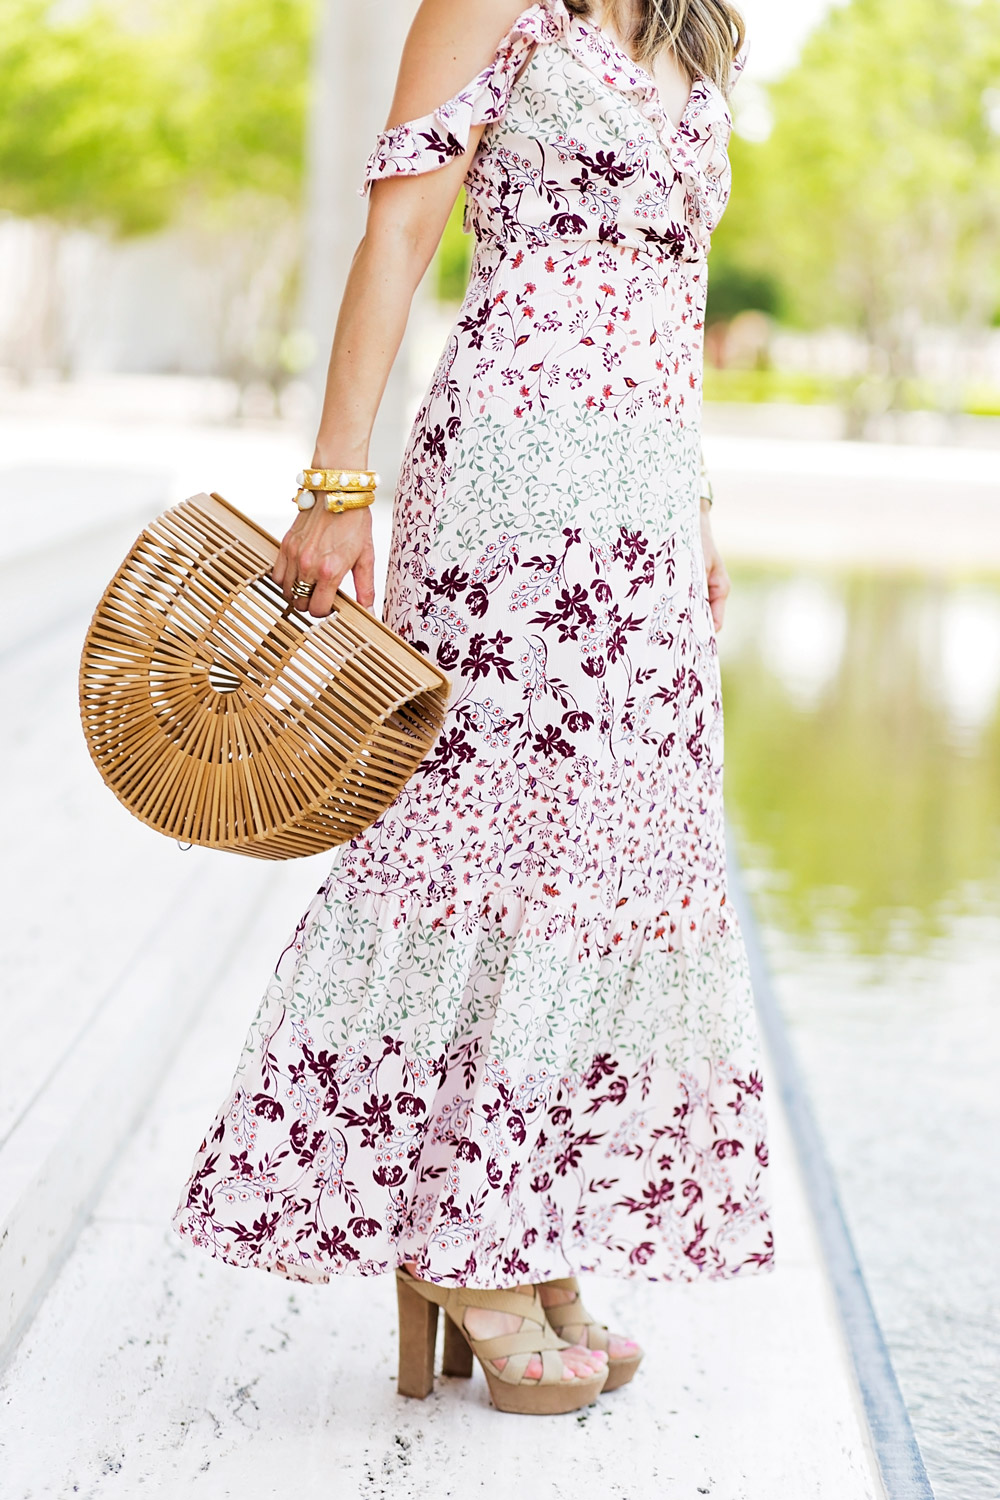 target ruffle cold shoulder maxi dress bamboo arc bag julie vos baroque cuff sienna bracelet joie platform sandals